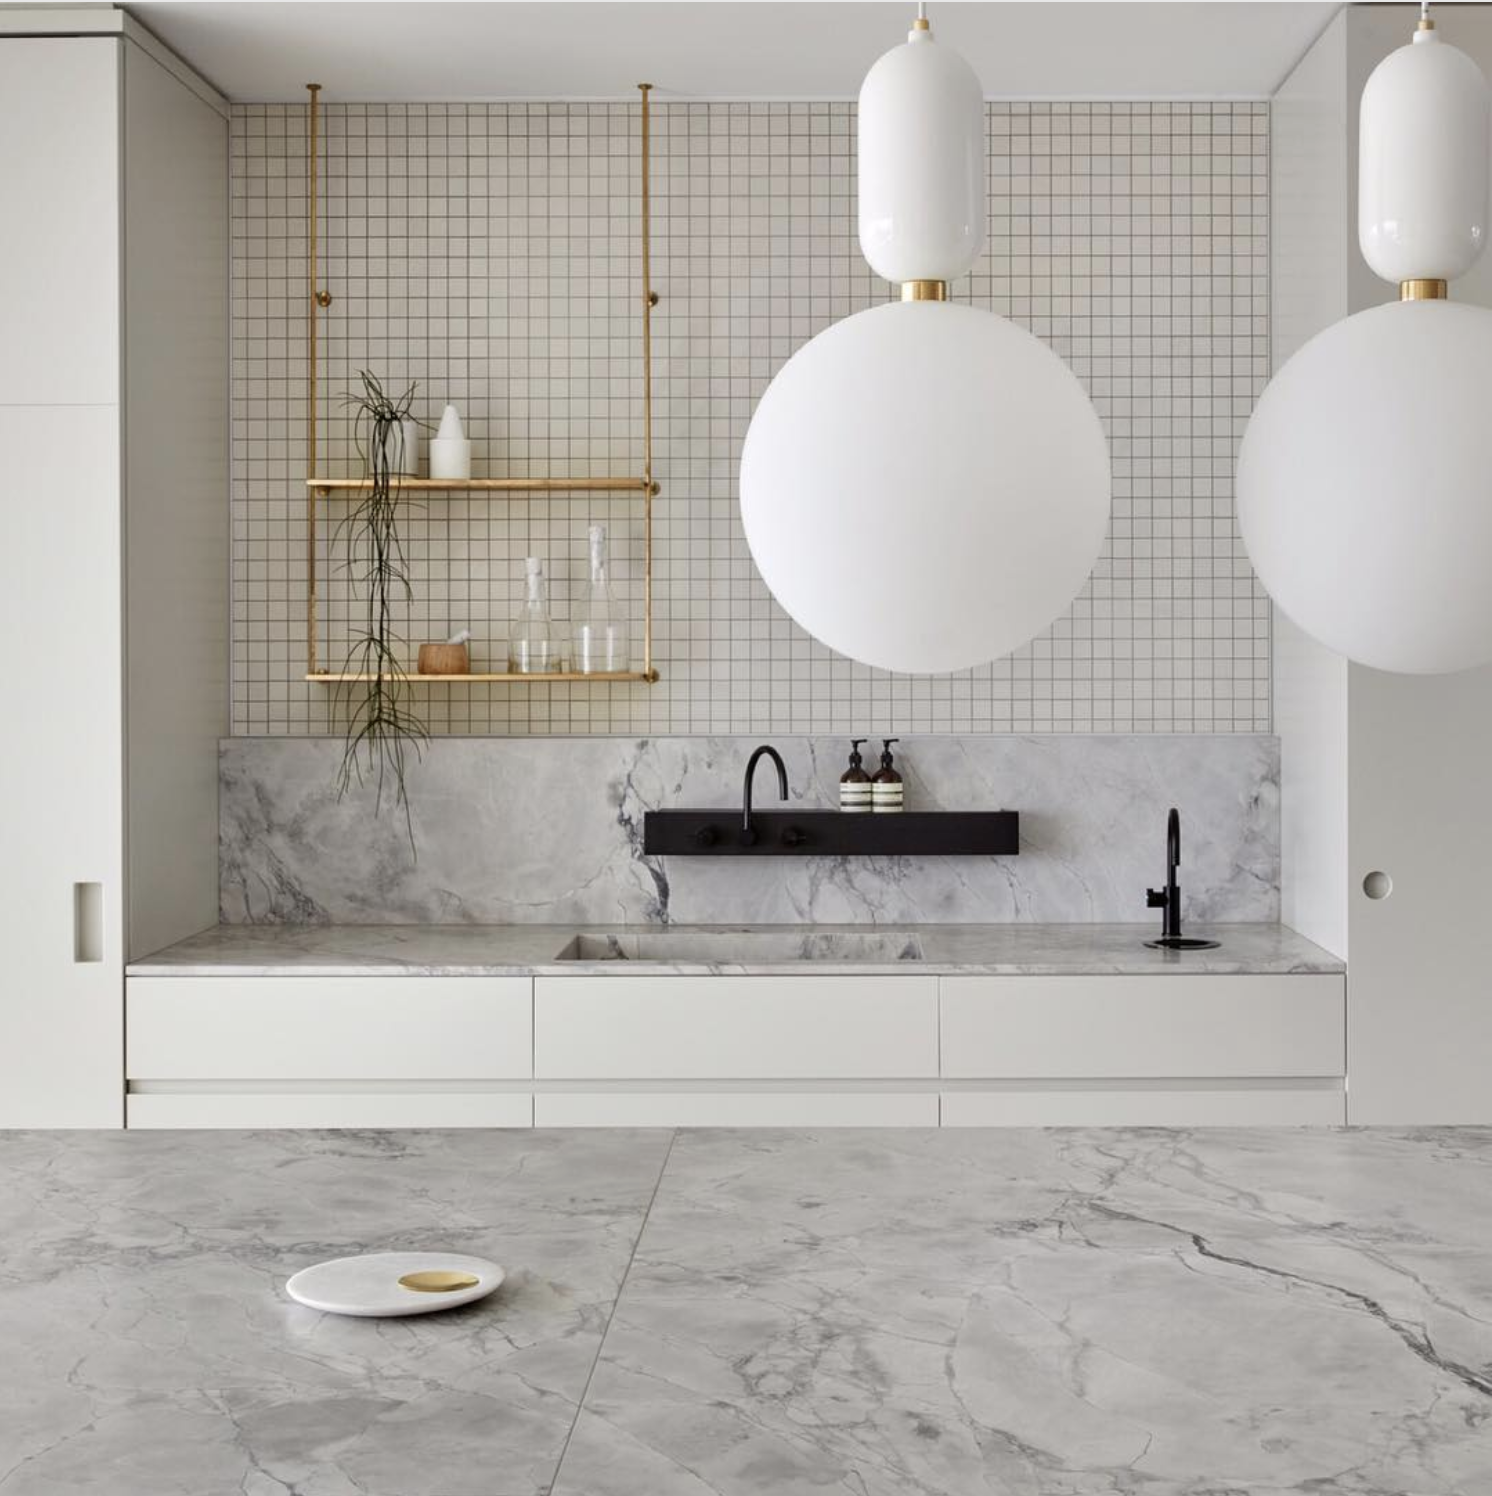 Source . In addition to having these spectacular lights that echo the moon shape, this kitchen is one of the more amazing spaces that I've seen recently.